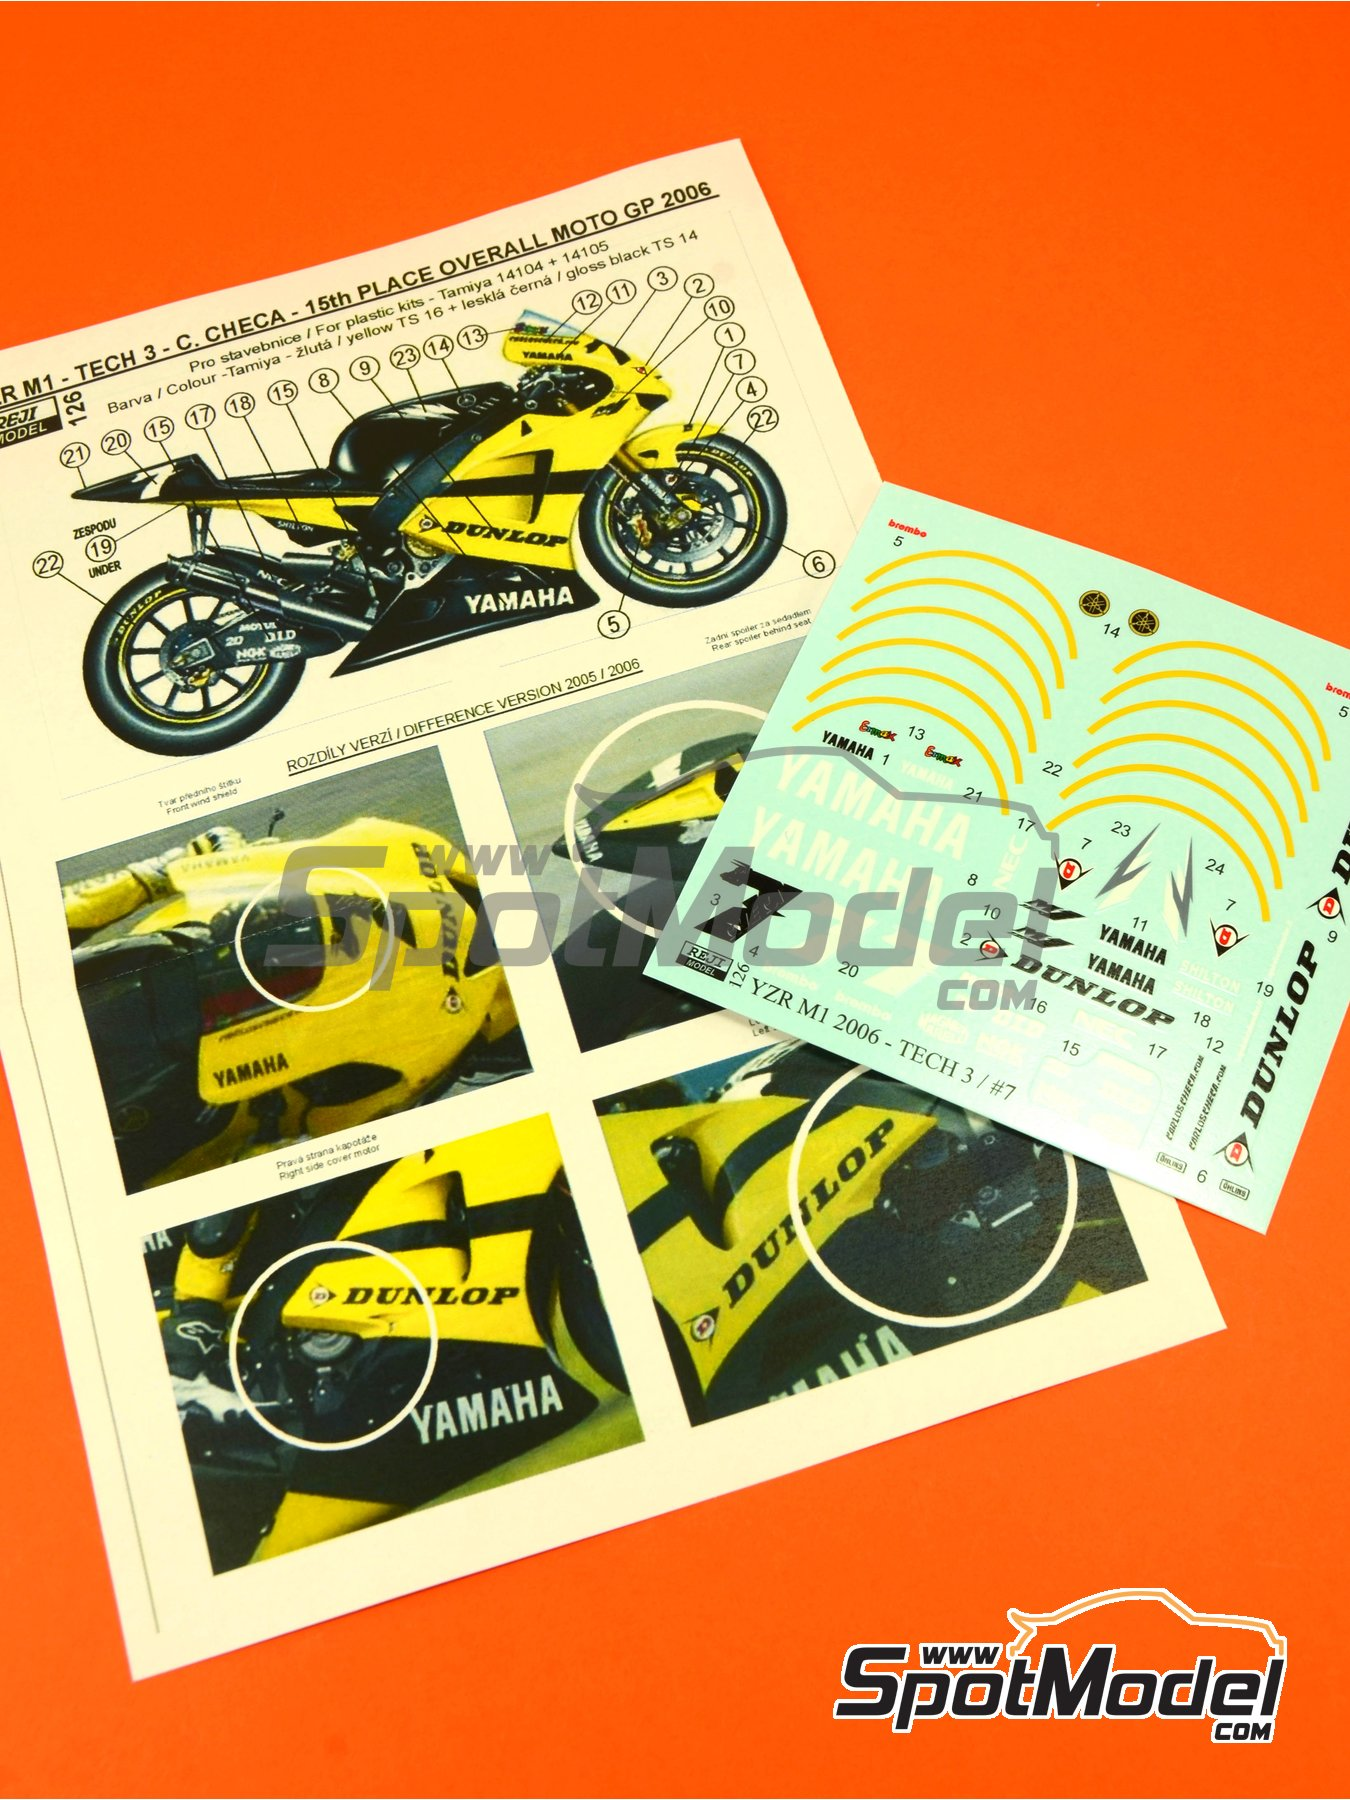 Yamaha YZR-M1 Tech3 Dunlop - Motorcycle World Championship 2006   Marking / livery in 1/12 scale manufactured by Reji Model (ref.REJI-126) image